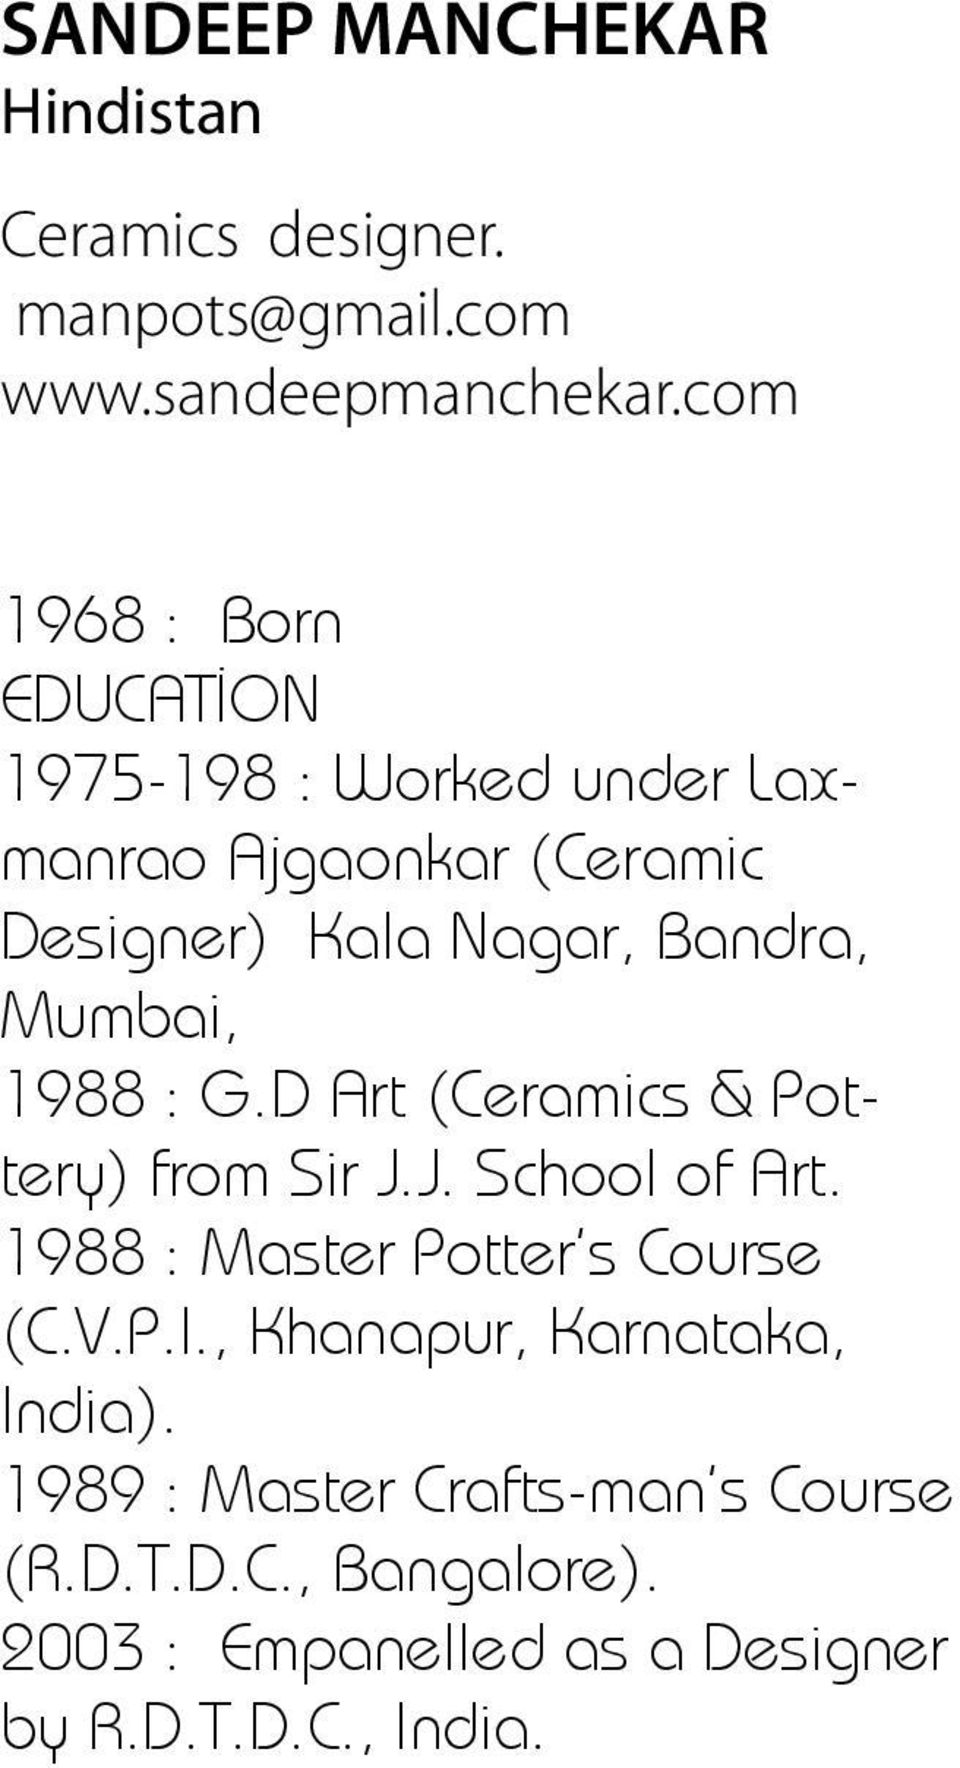 Mumbai, 1988 : G.D Art (Ceramics & Pottery) from Sir J.J. School of Art. 1988 : Master Potter s Course (C.V.P.I.